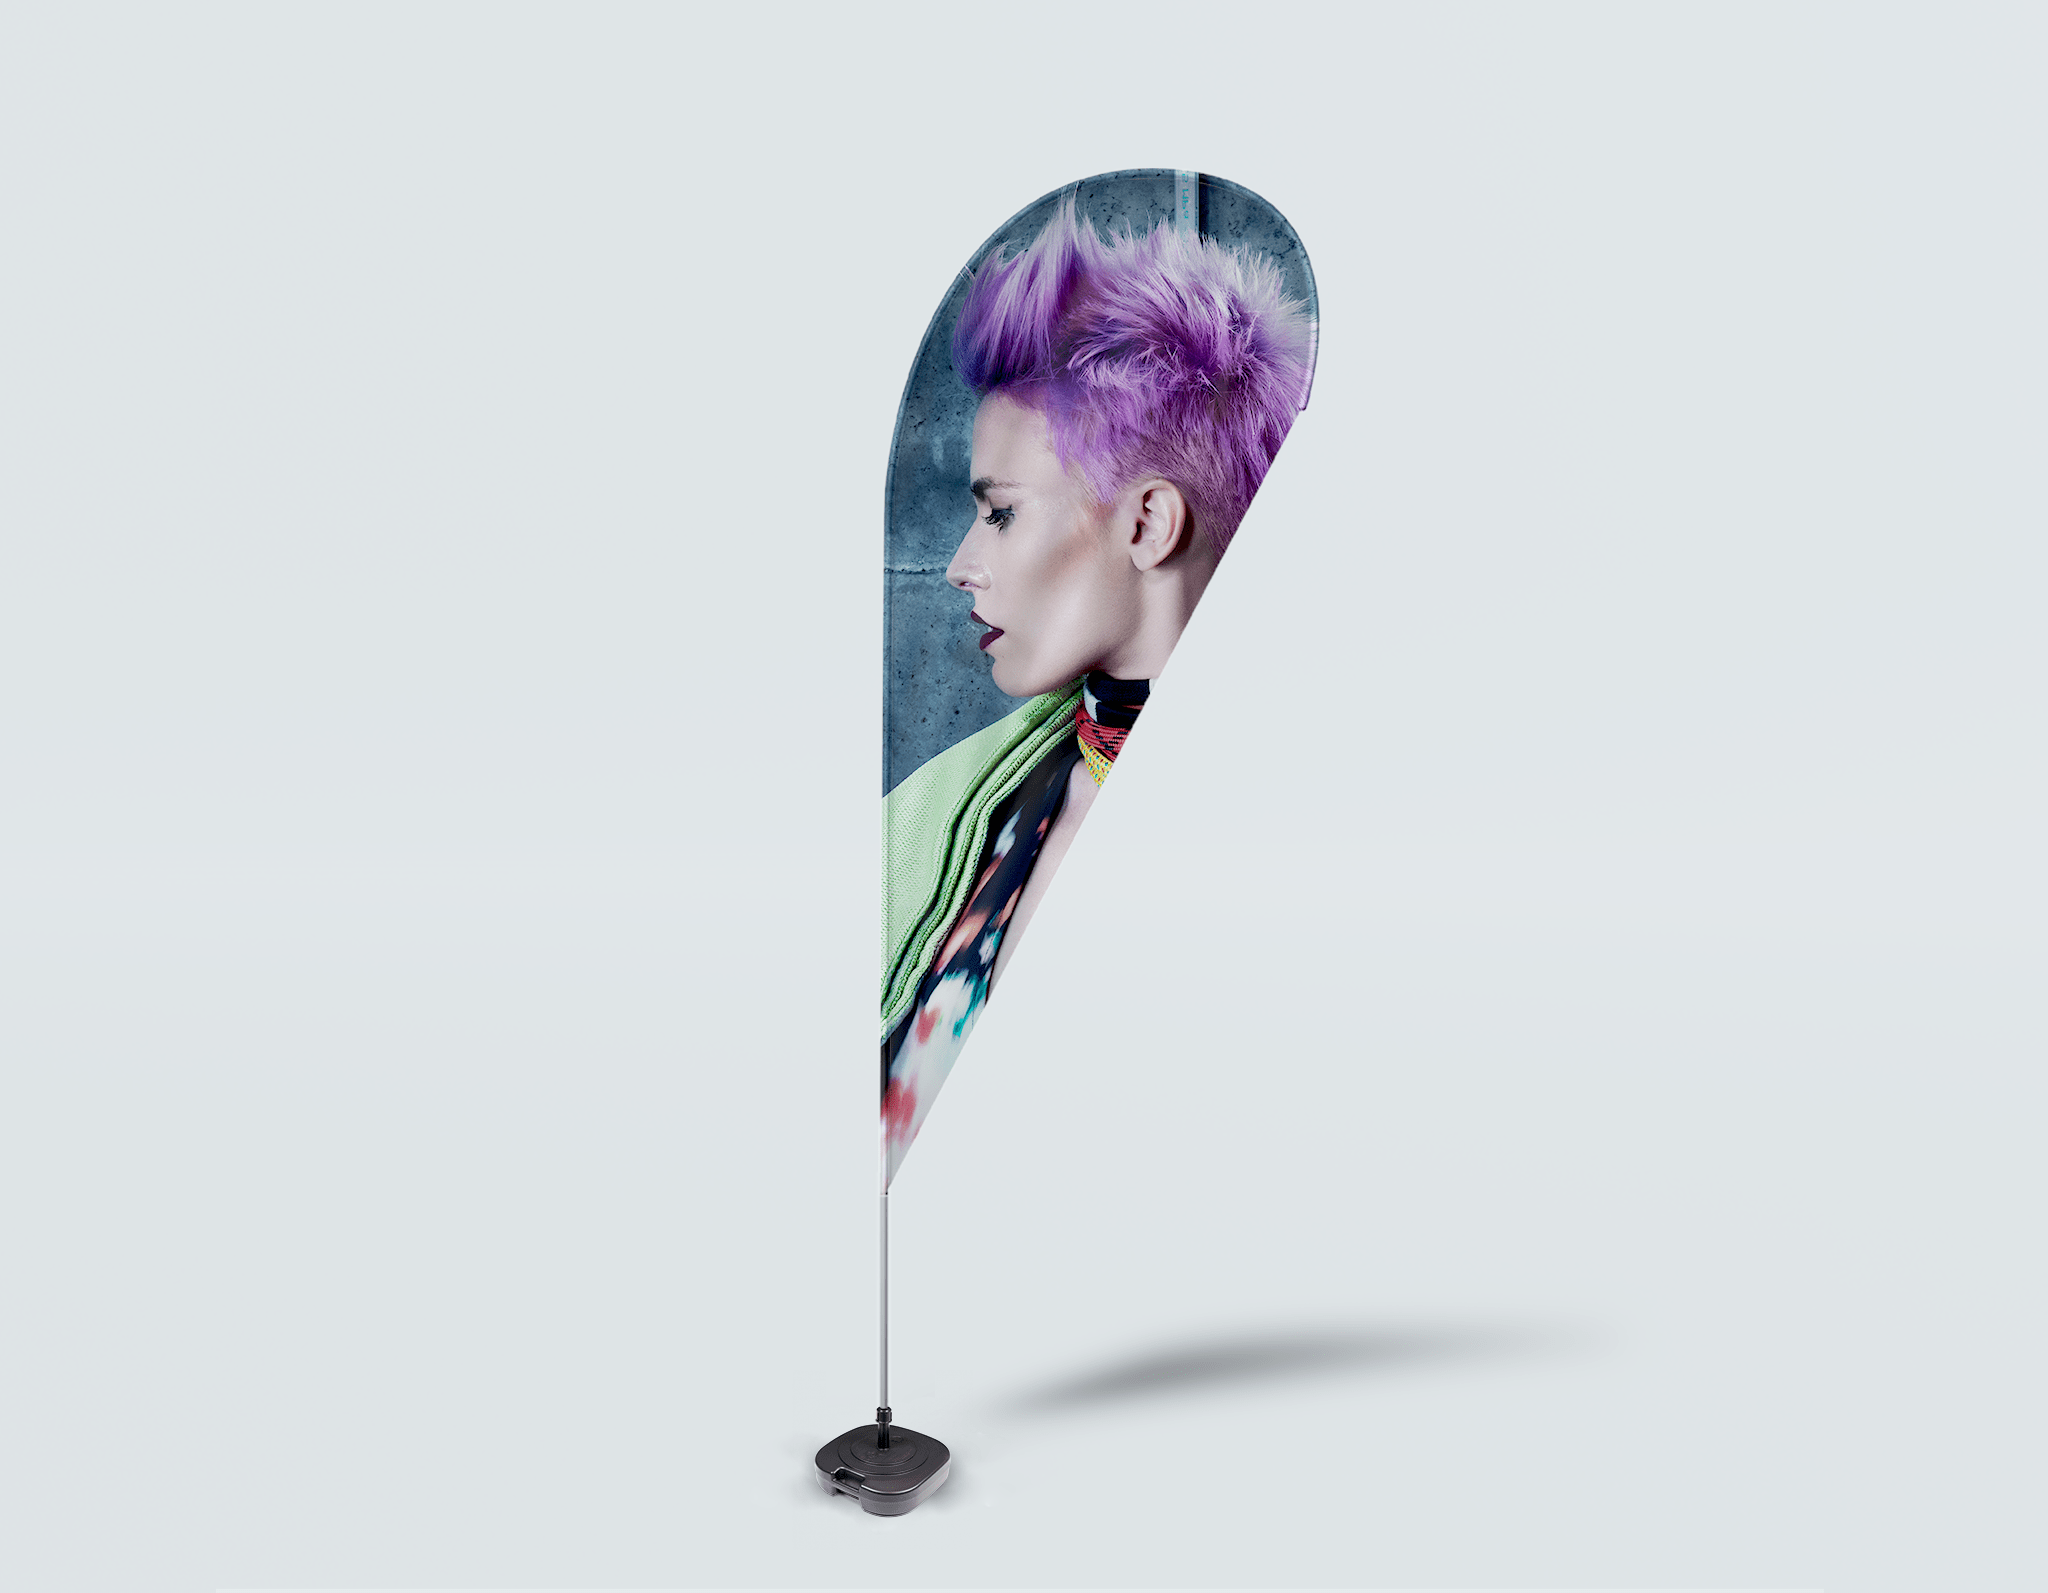 Salon Beach Flag - Vrouw in Purple Pixie Cut